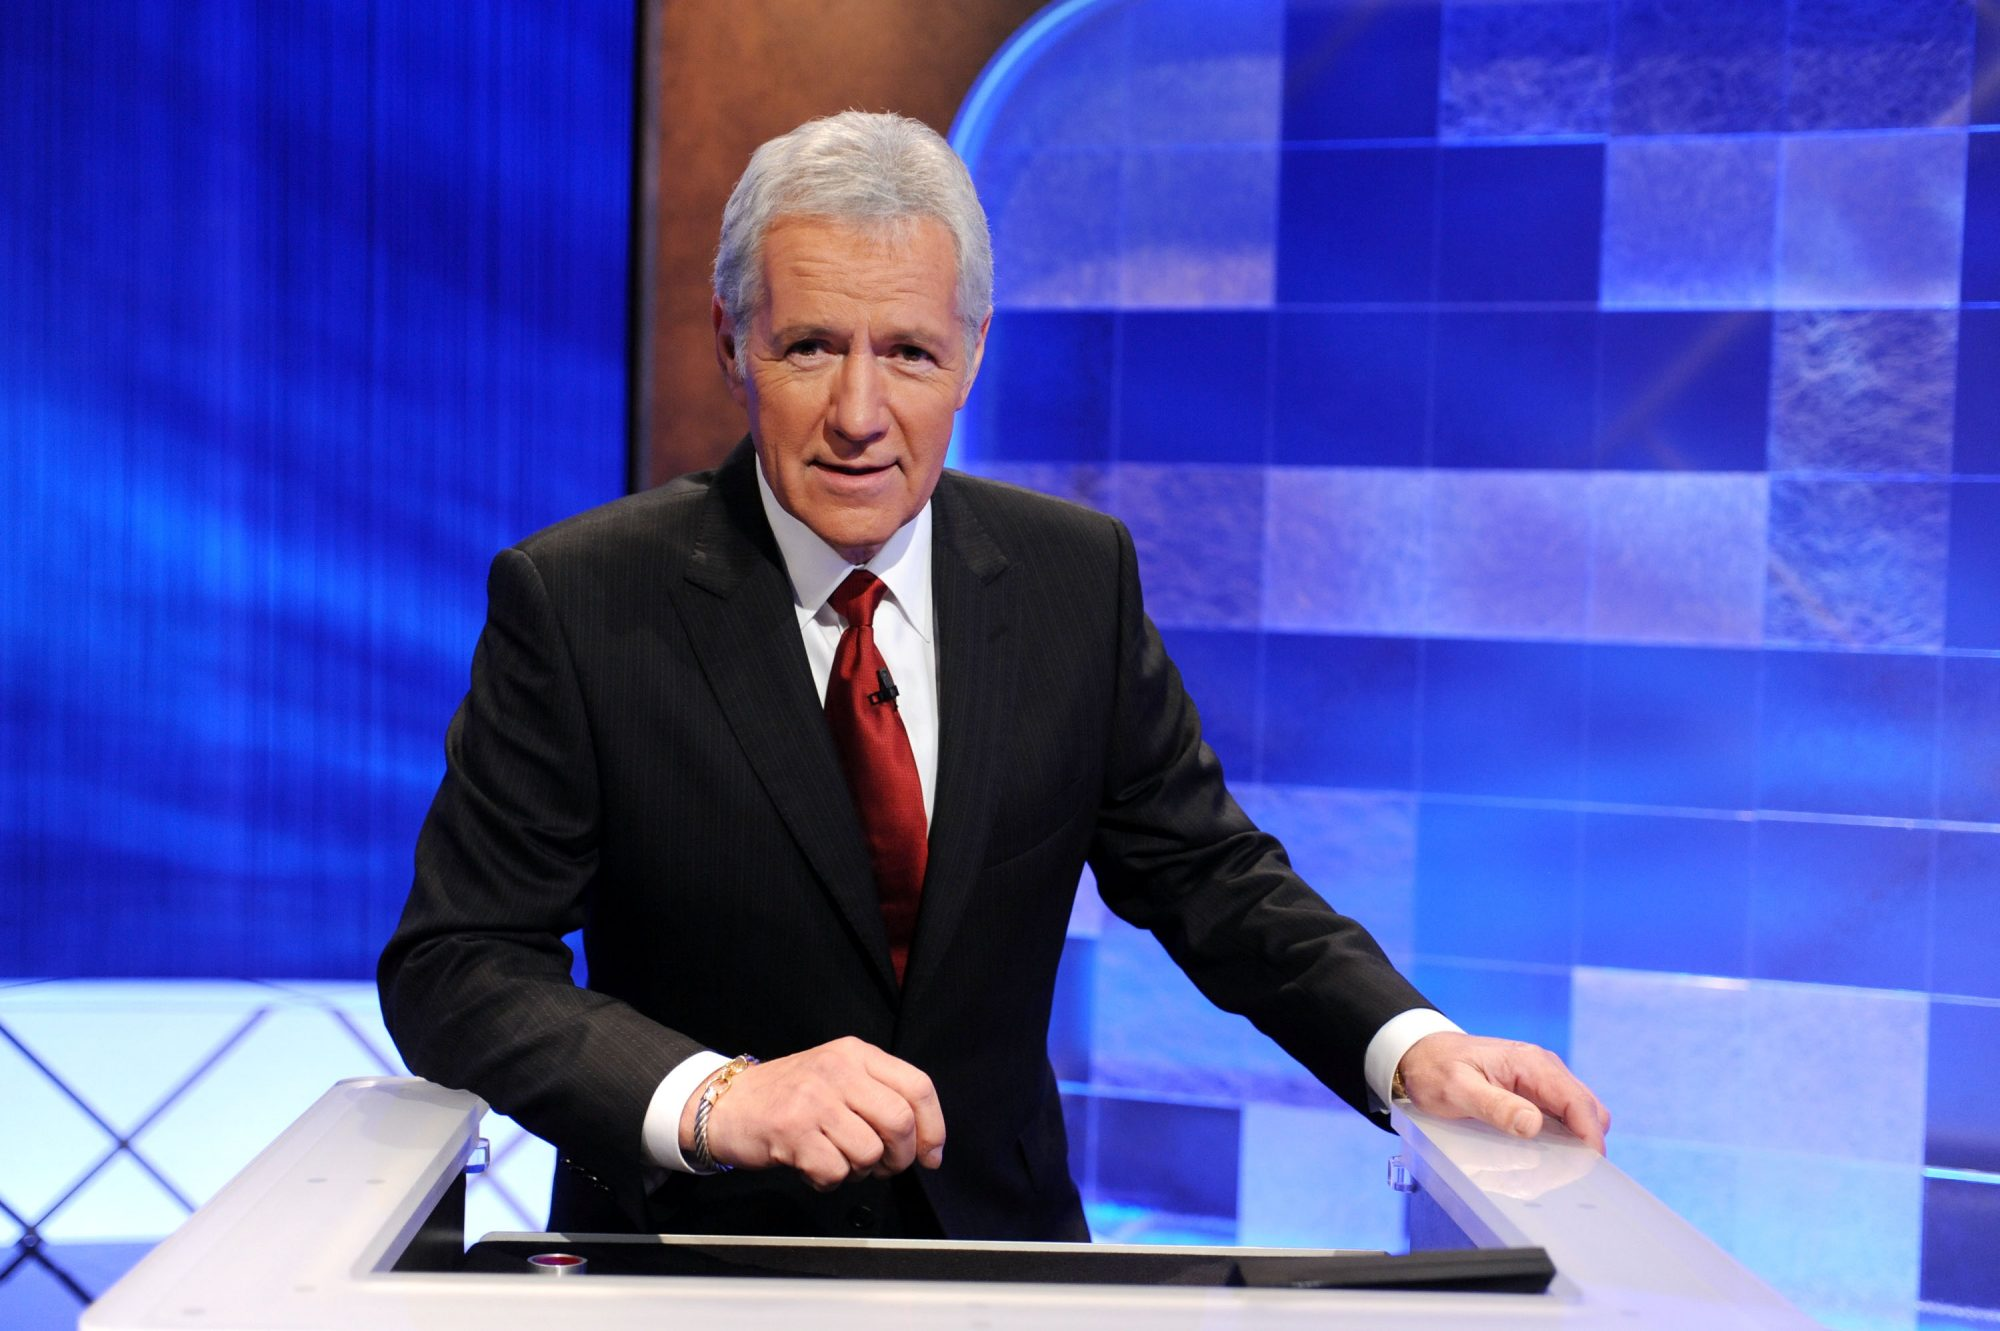 Alex Trebek at Jeopardy podium